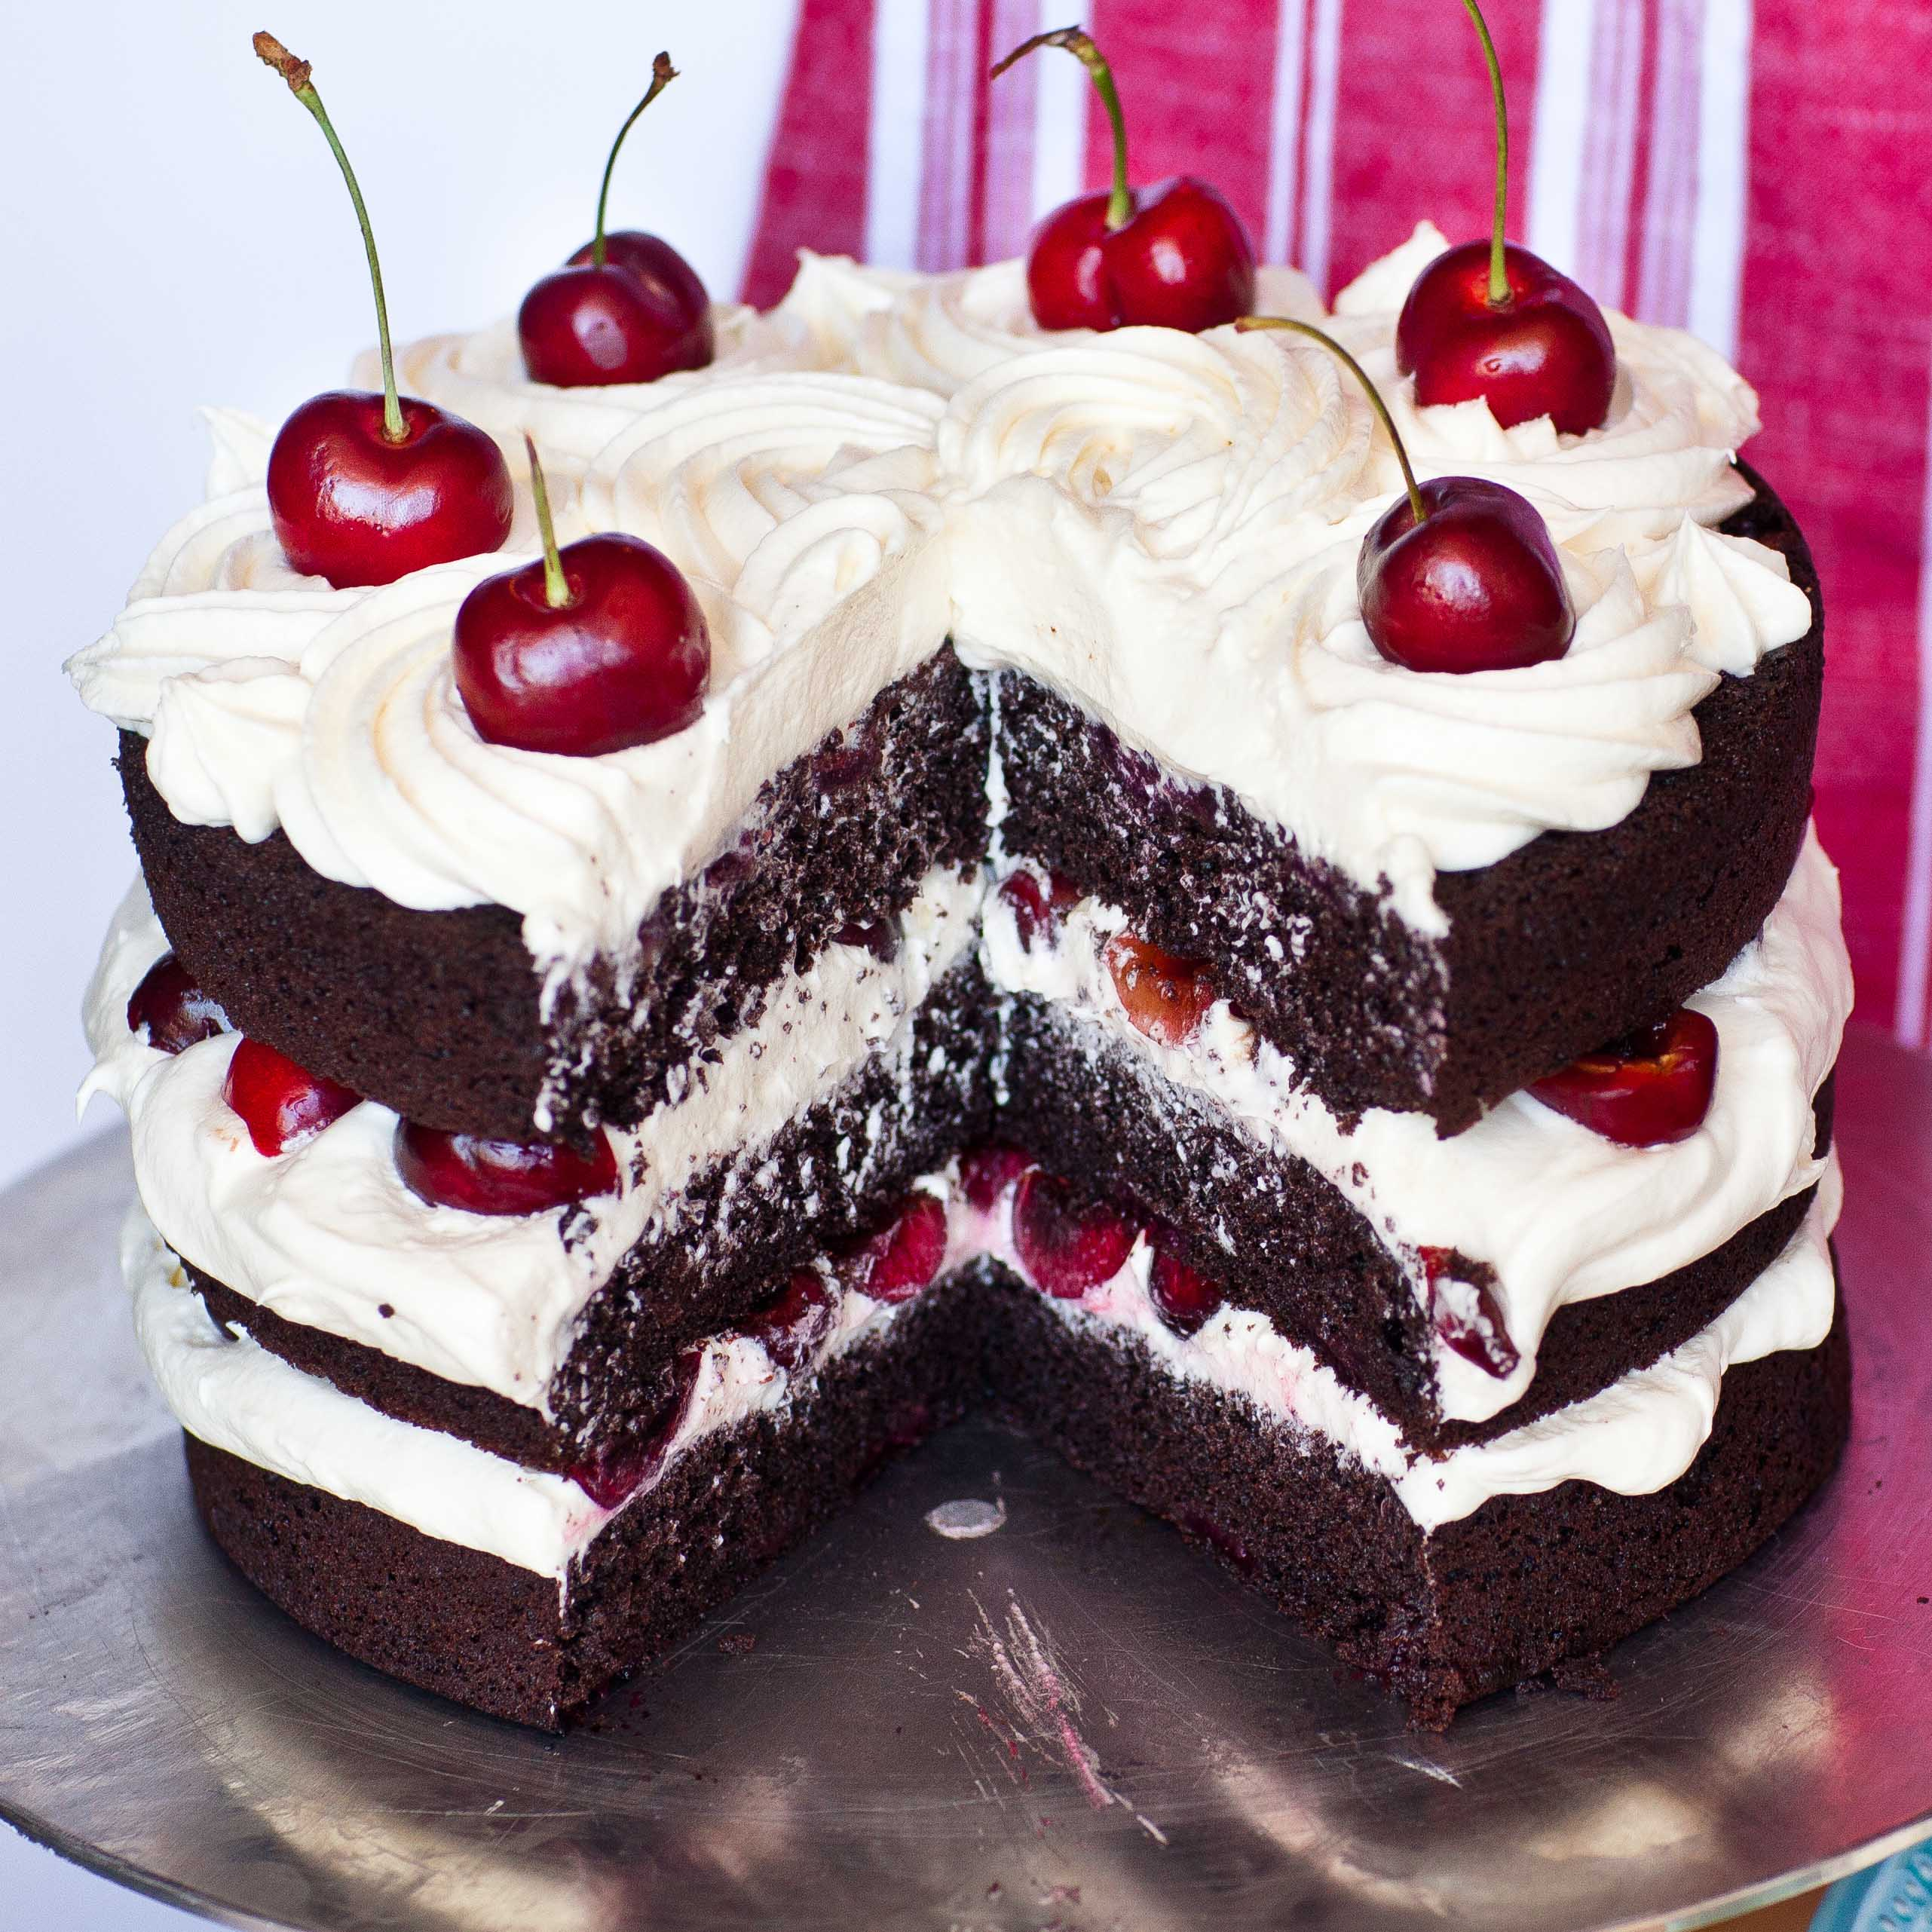 Can You Use Cherry Pie Filling In A Cake